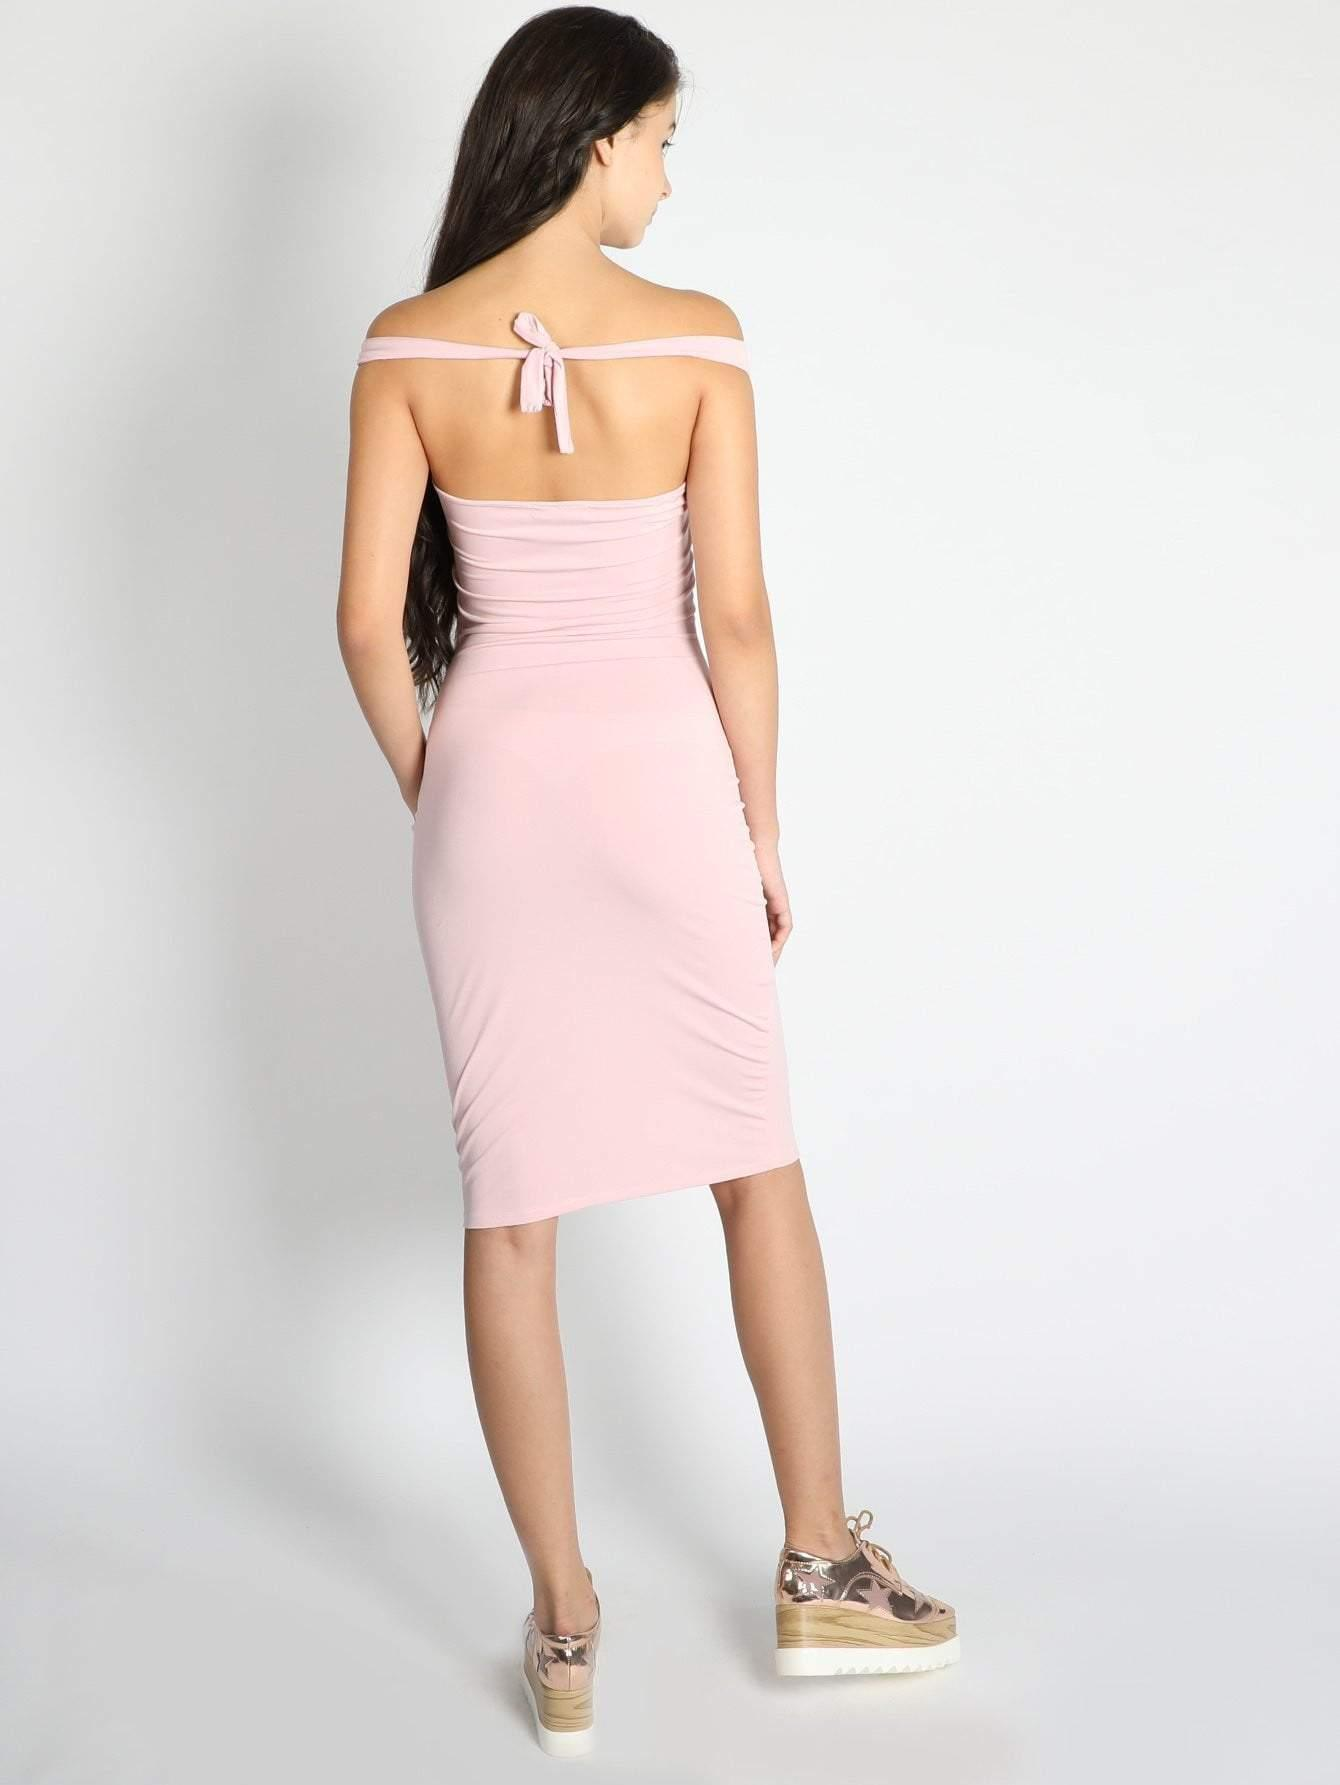 Pink Off Shoulder Criss Cross Front Halter Neck Dress - Dresses - Zooomberg - Zoomberg